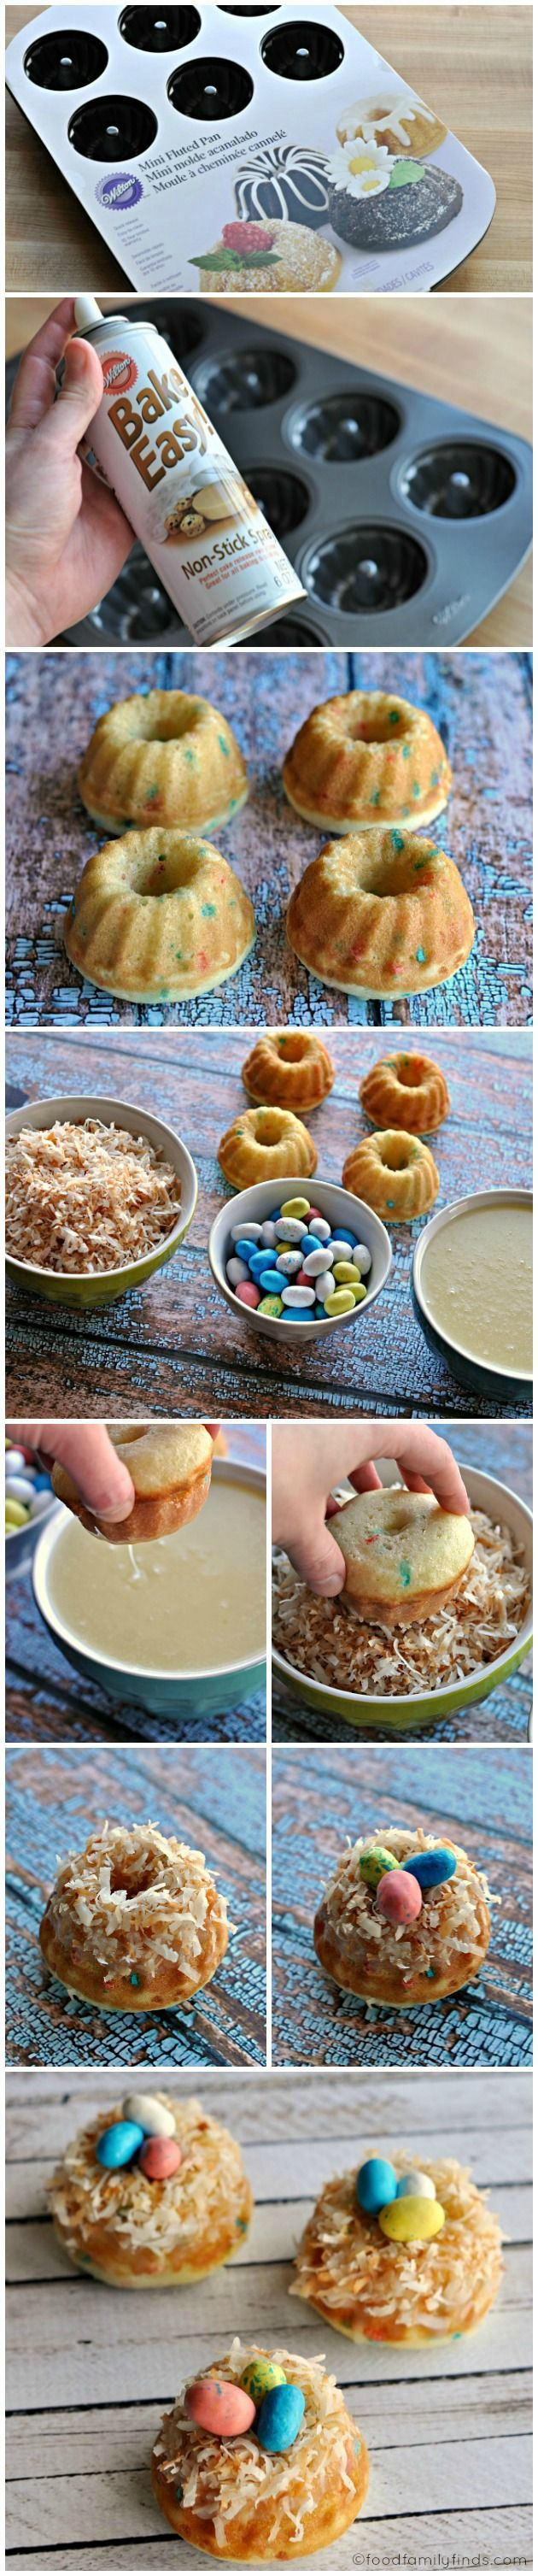 How to Make Birds Nest Baby Cakes for Easter